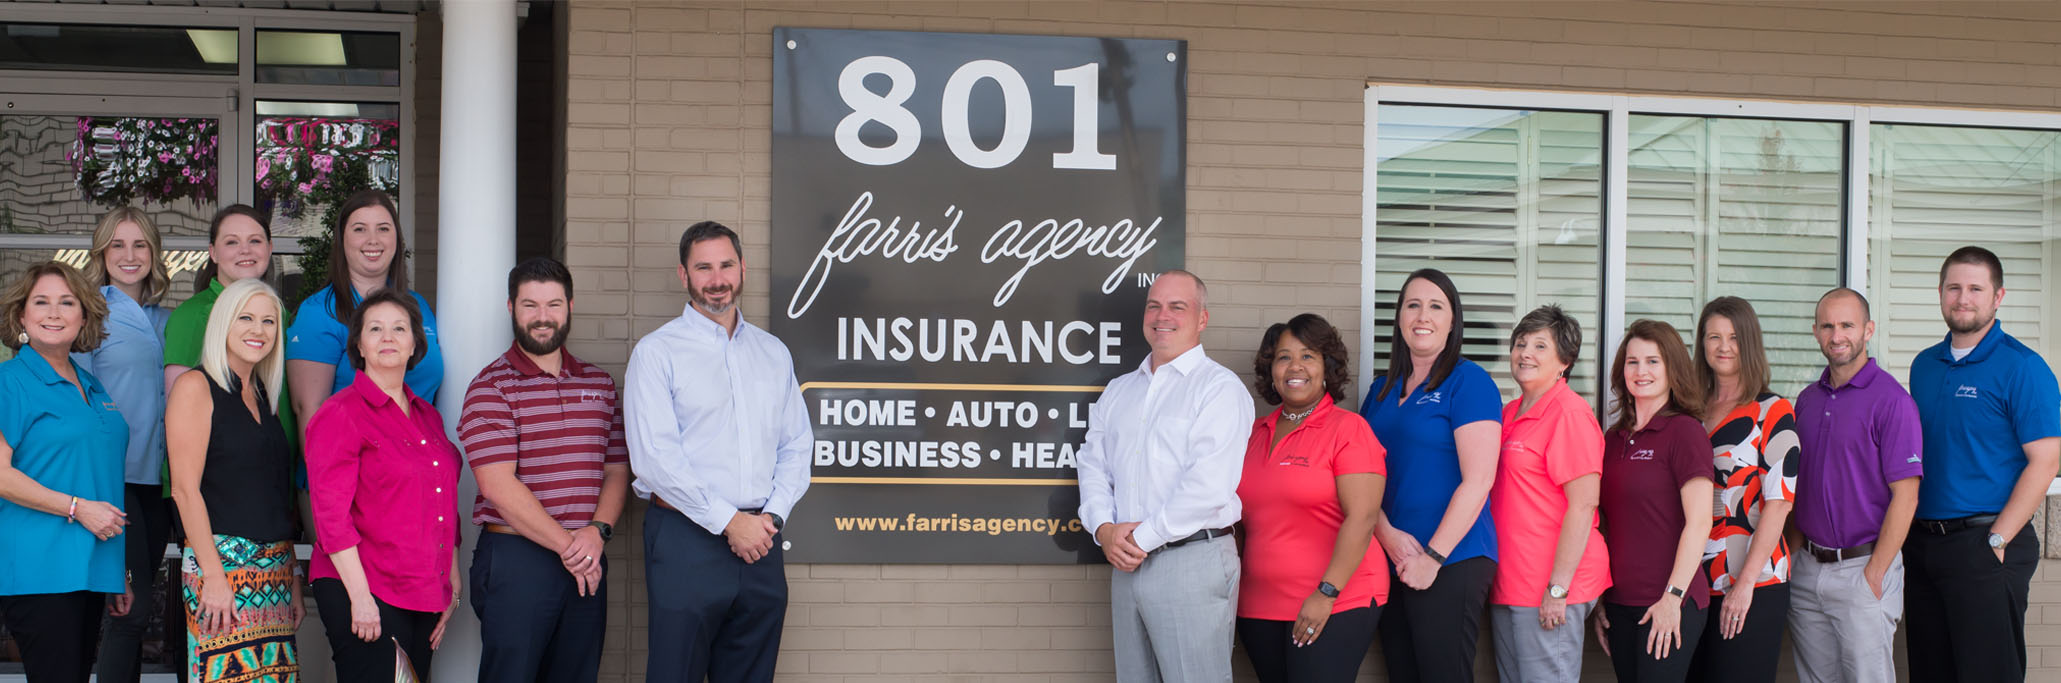 Photo of Farris Agency agents